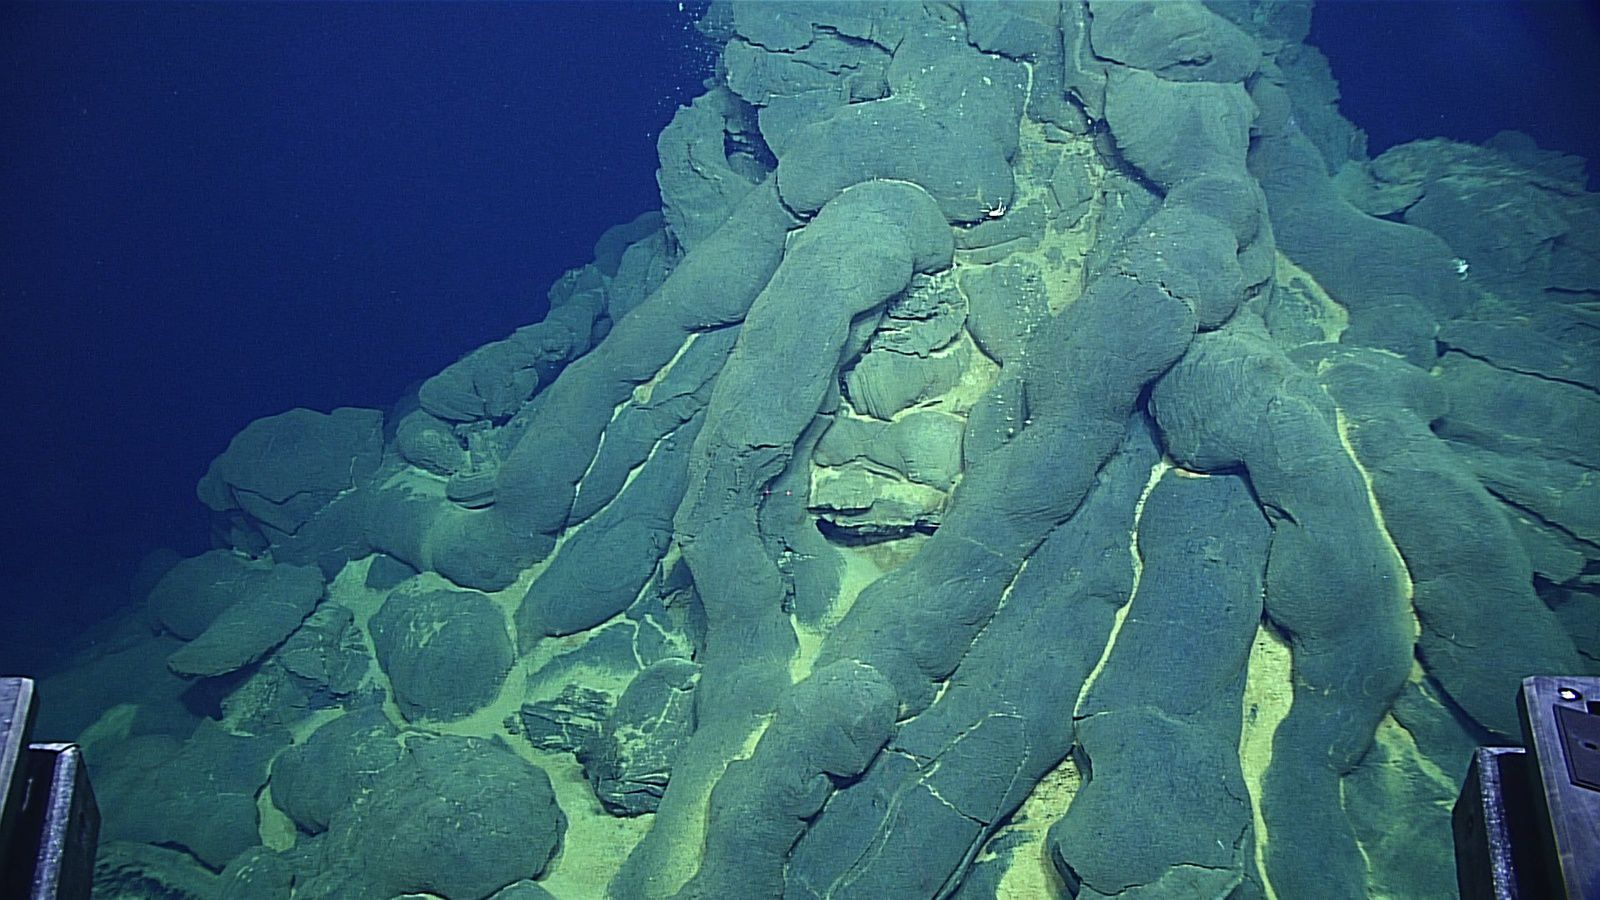 Mariannes - monticule  de pillow lavas  - Image courtesy of the NOAA Office of Ocean Exploration and Research, 2016 Deepwater Exploration of the Marianas. - apr30-hires